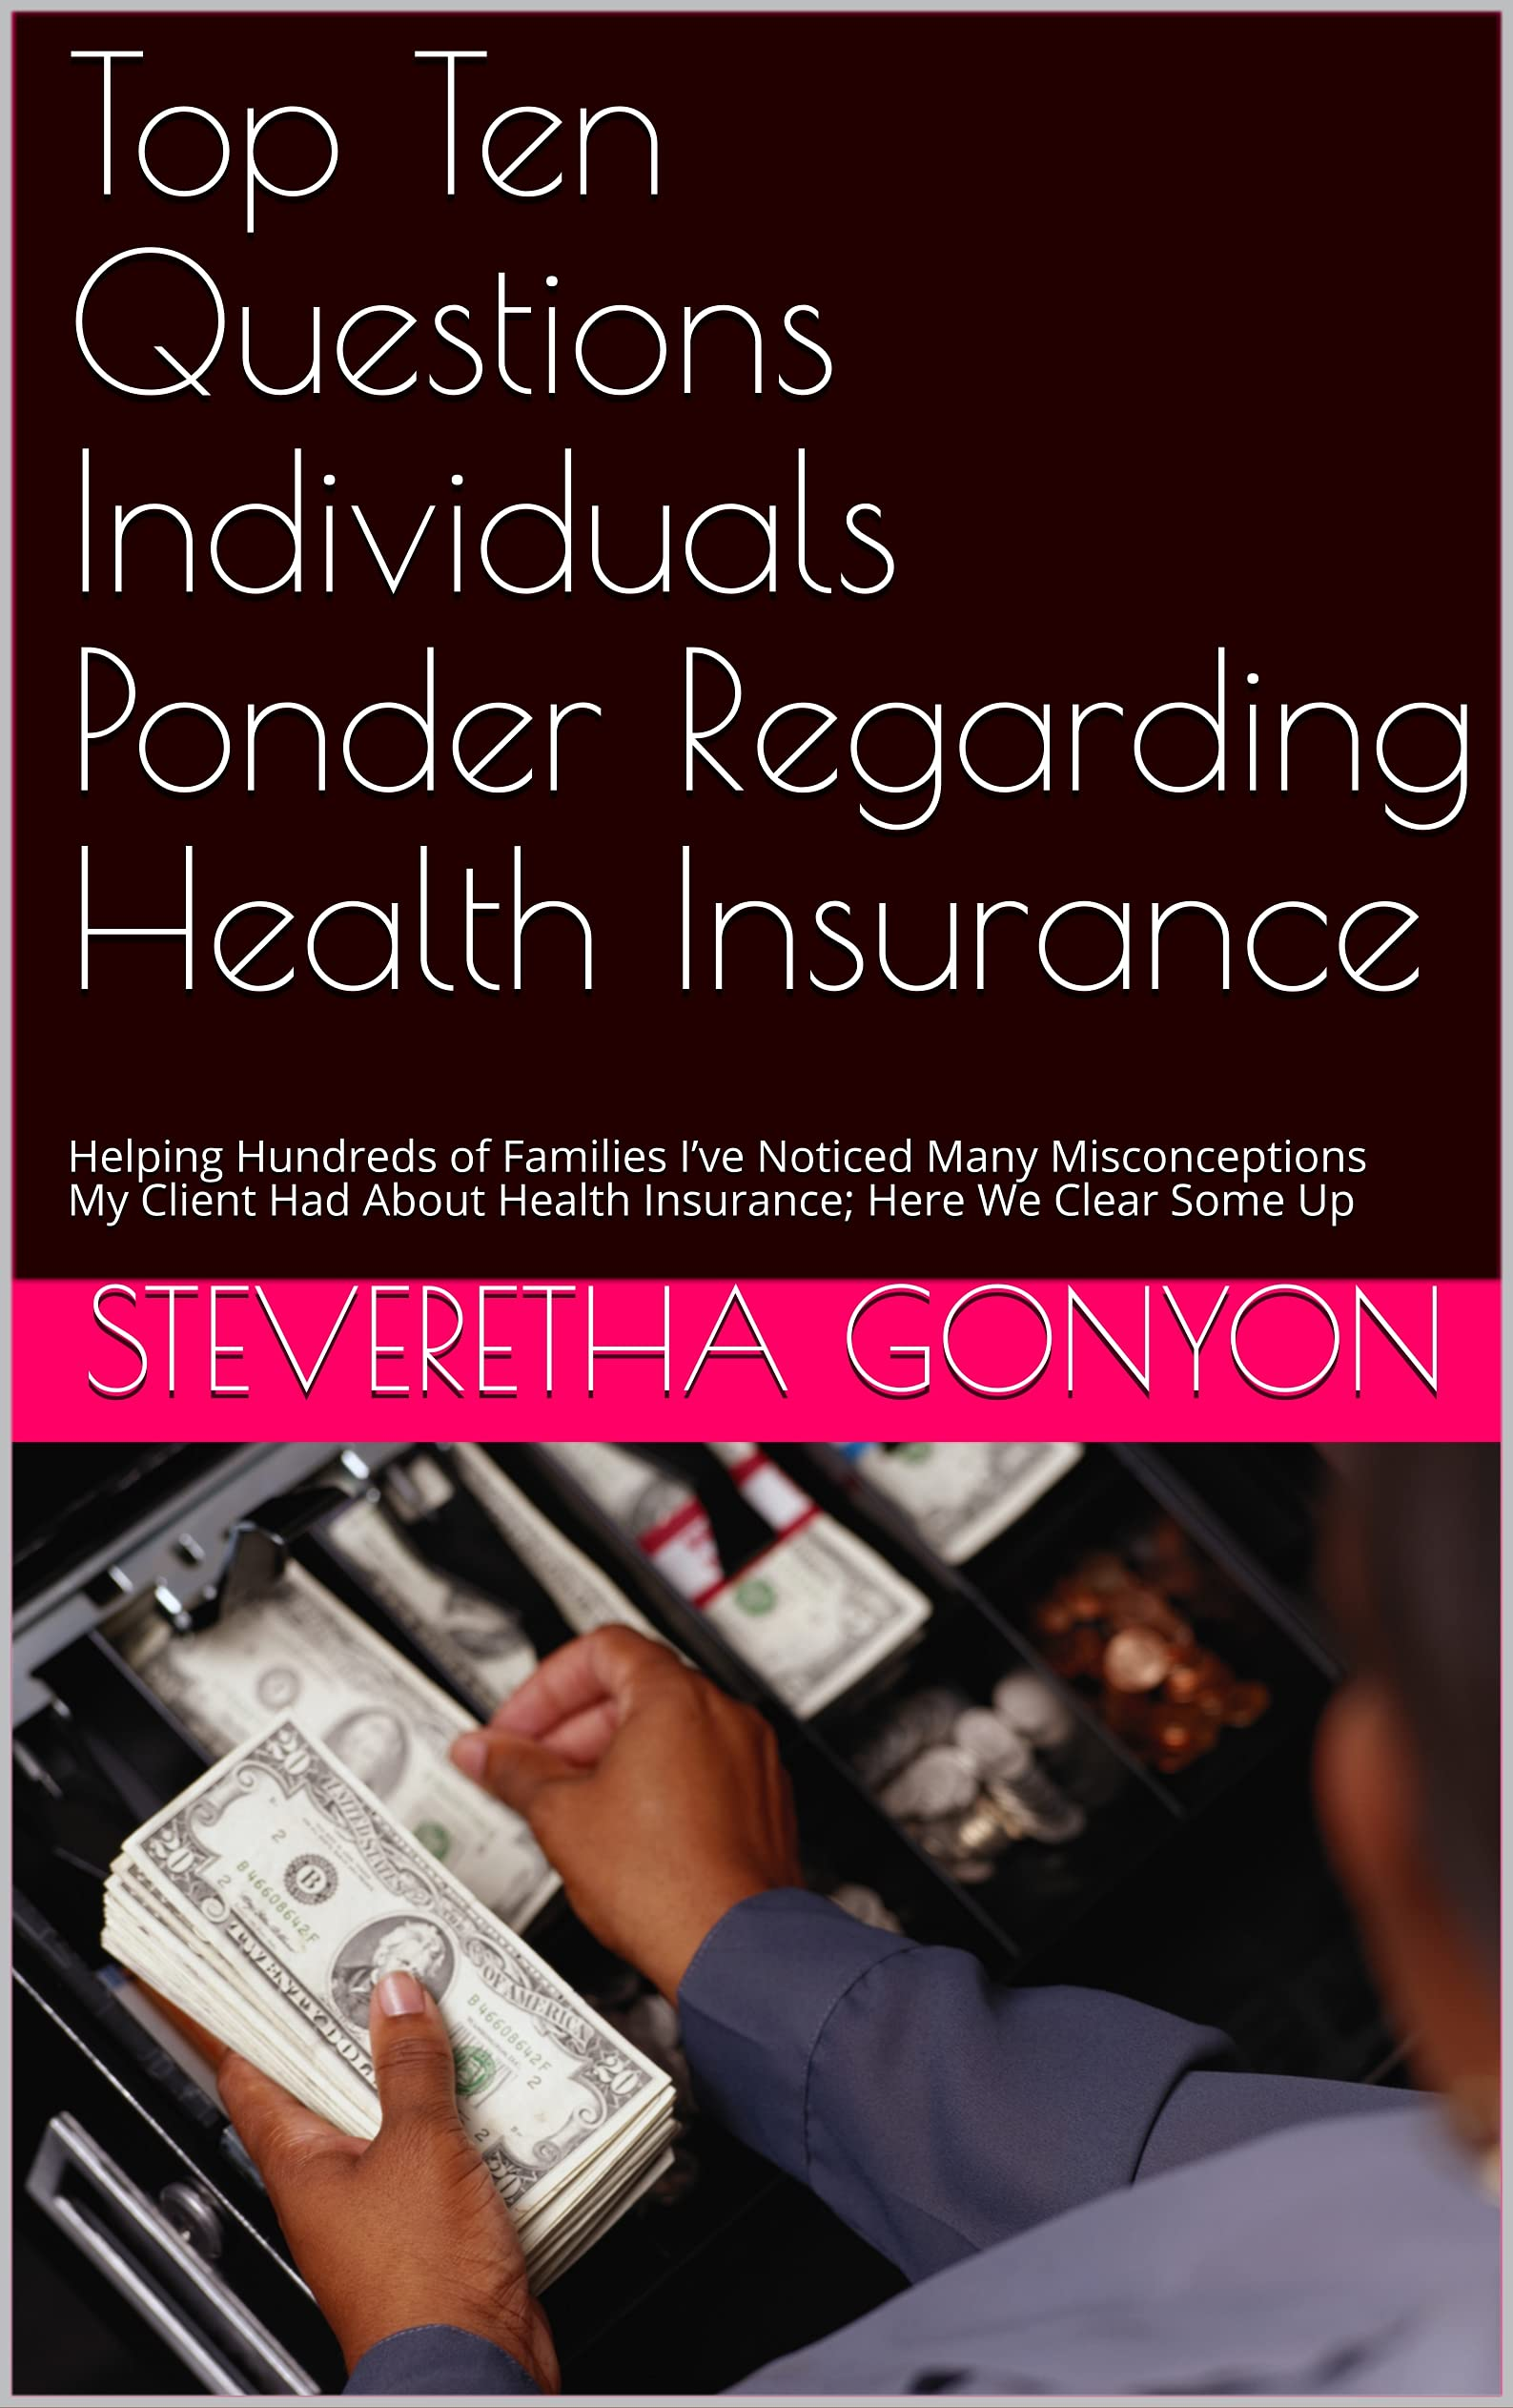 Top Ten Questions Individuals Ponder Regarding Health Insurance: Saving Money for Hundreds of Families Clearing Misconceptions About Health Insurance